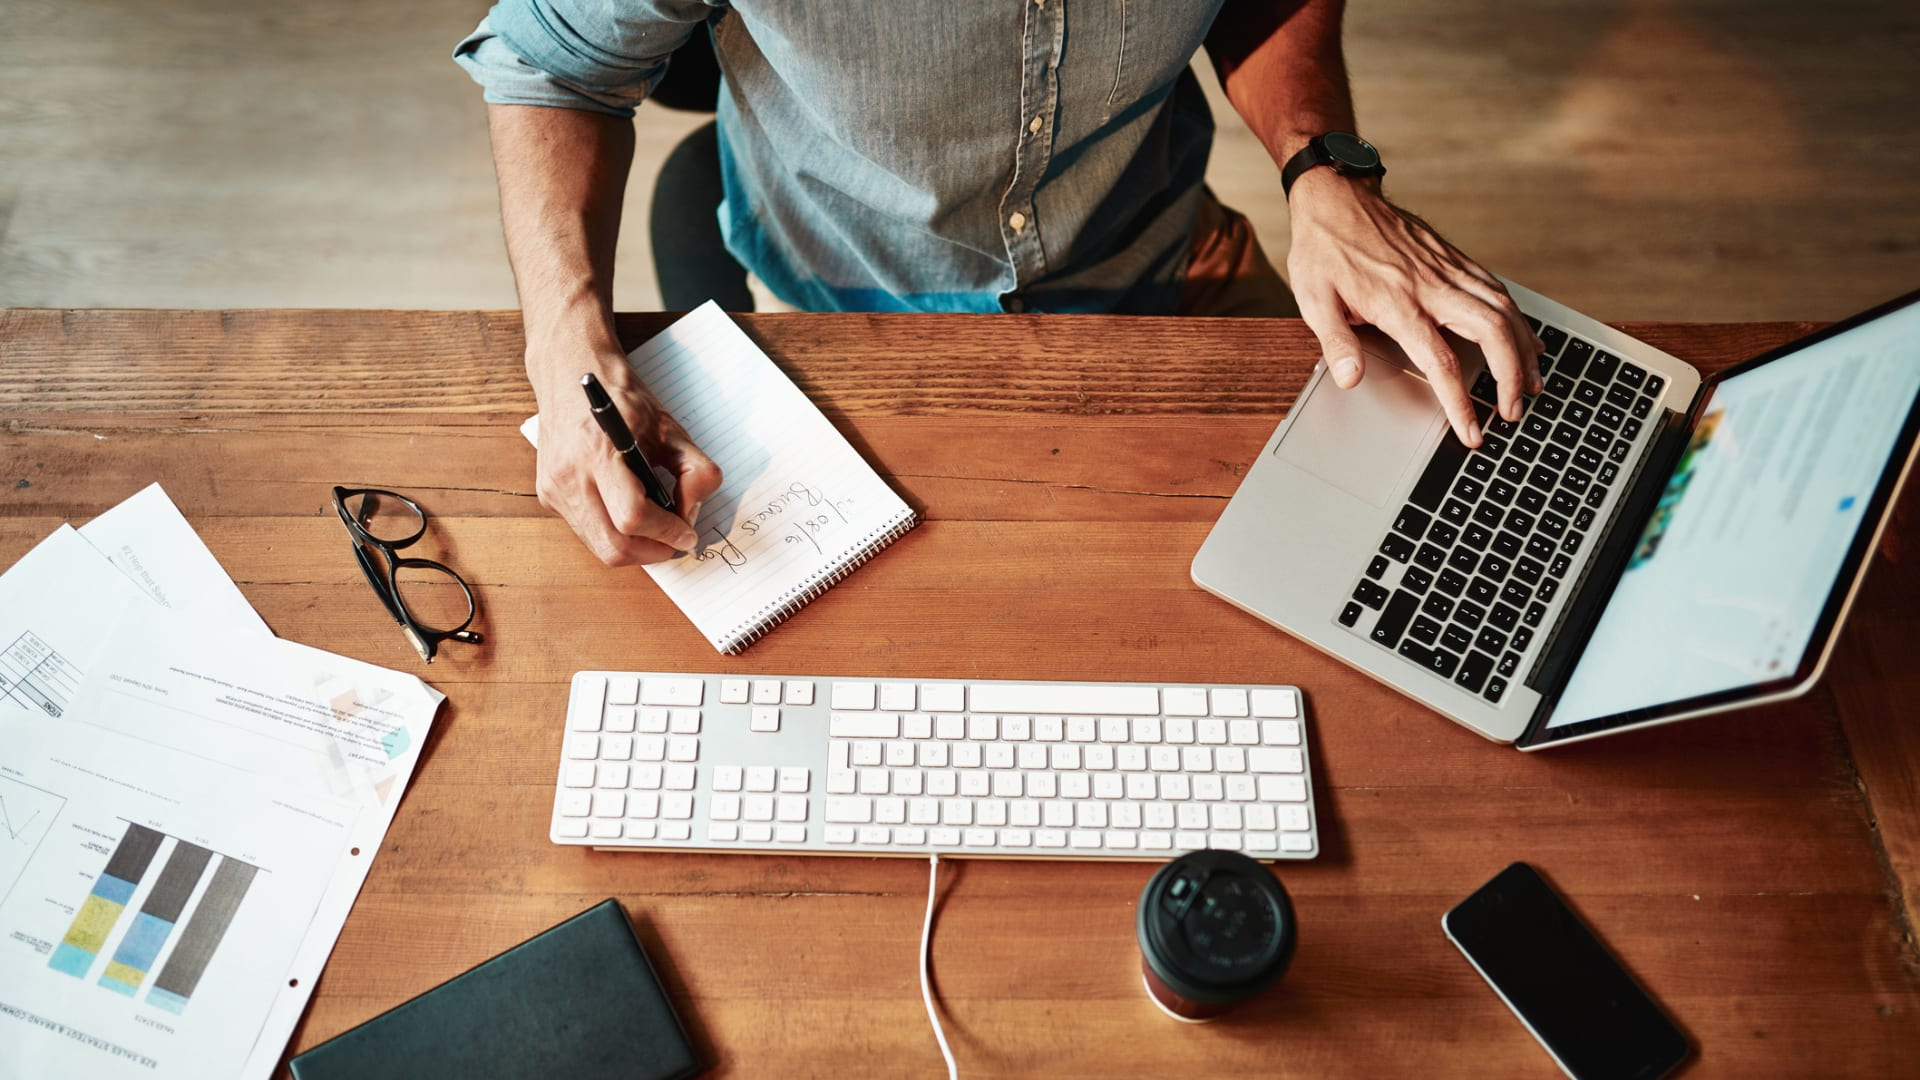 The Remote Worker's Guide to Clear, Concise, and Effective Writing